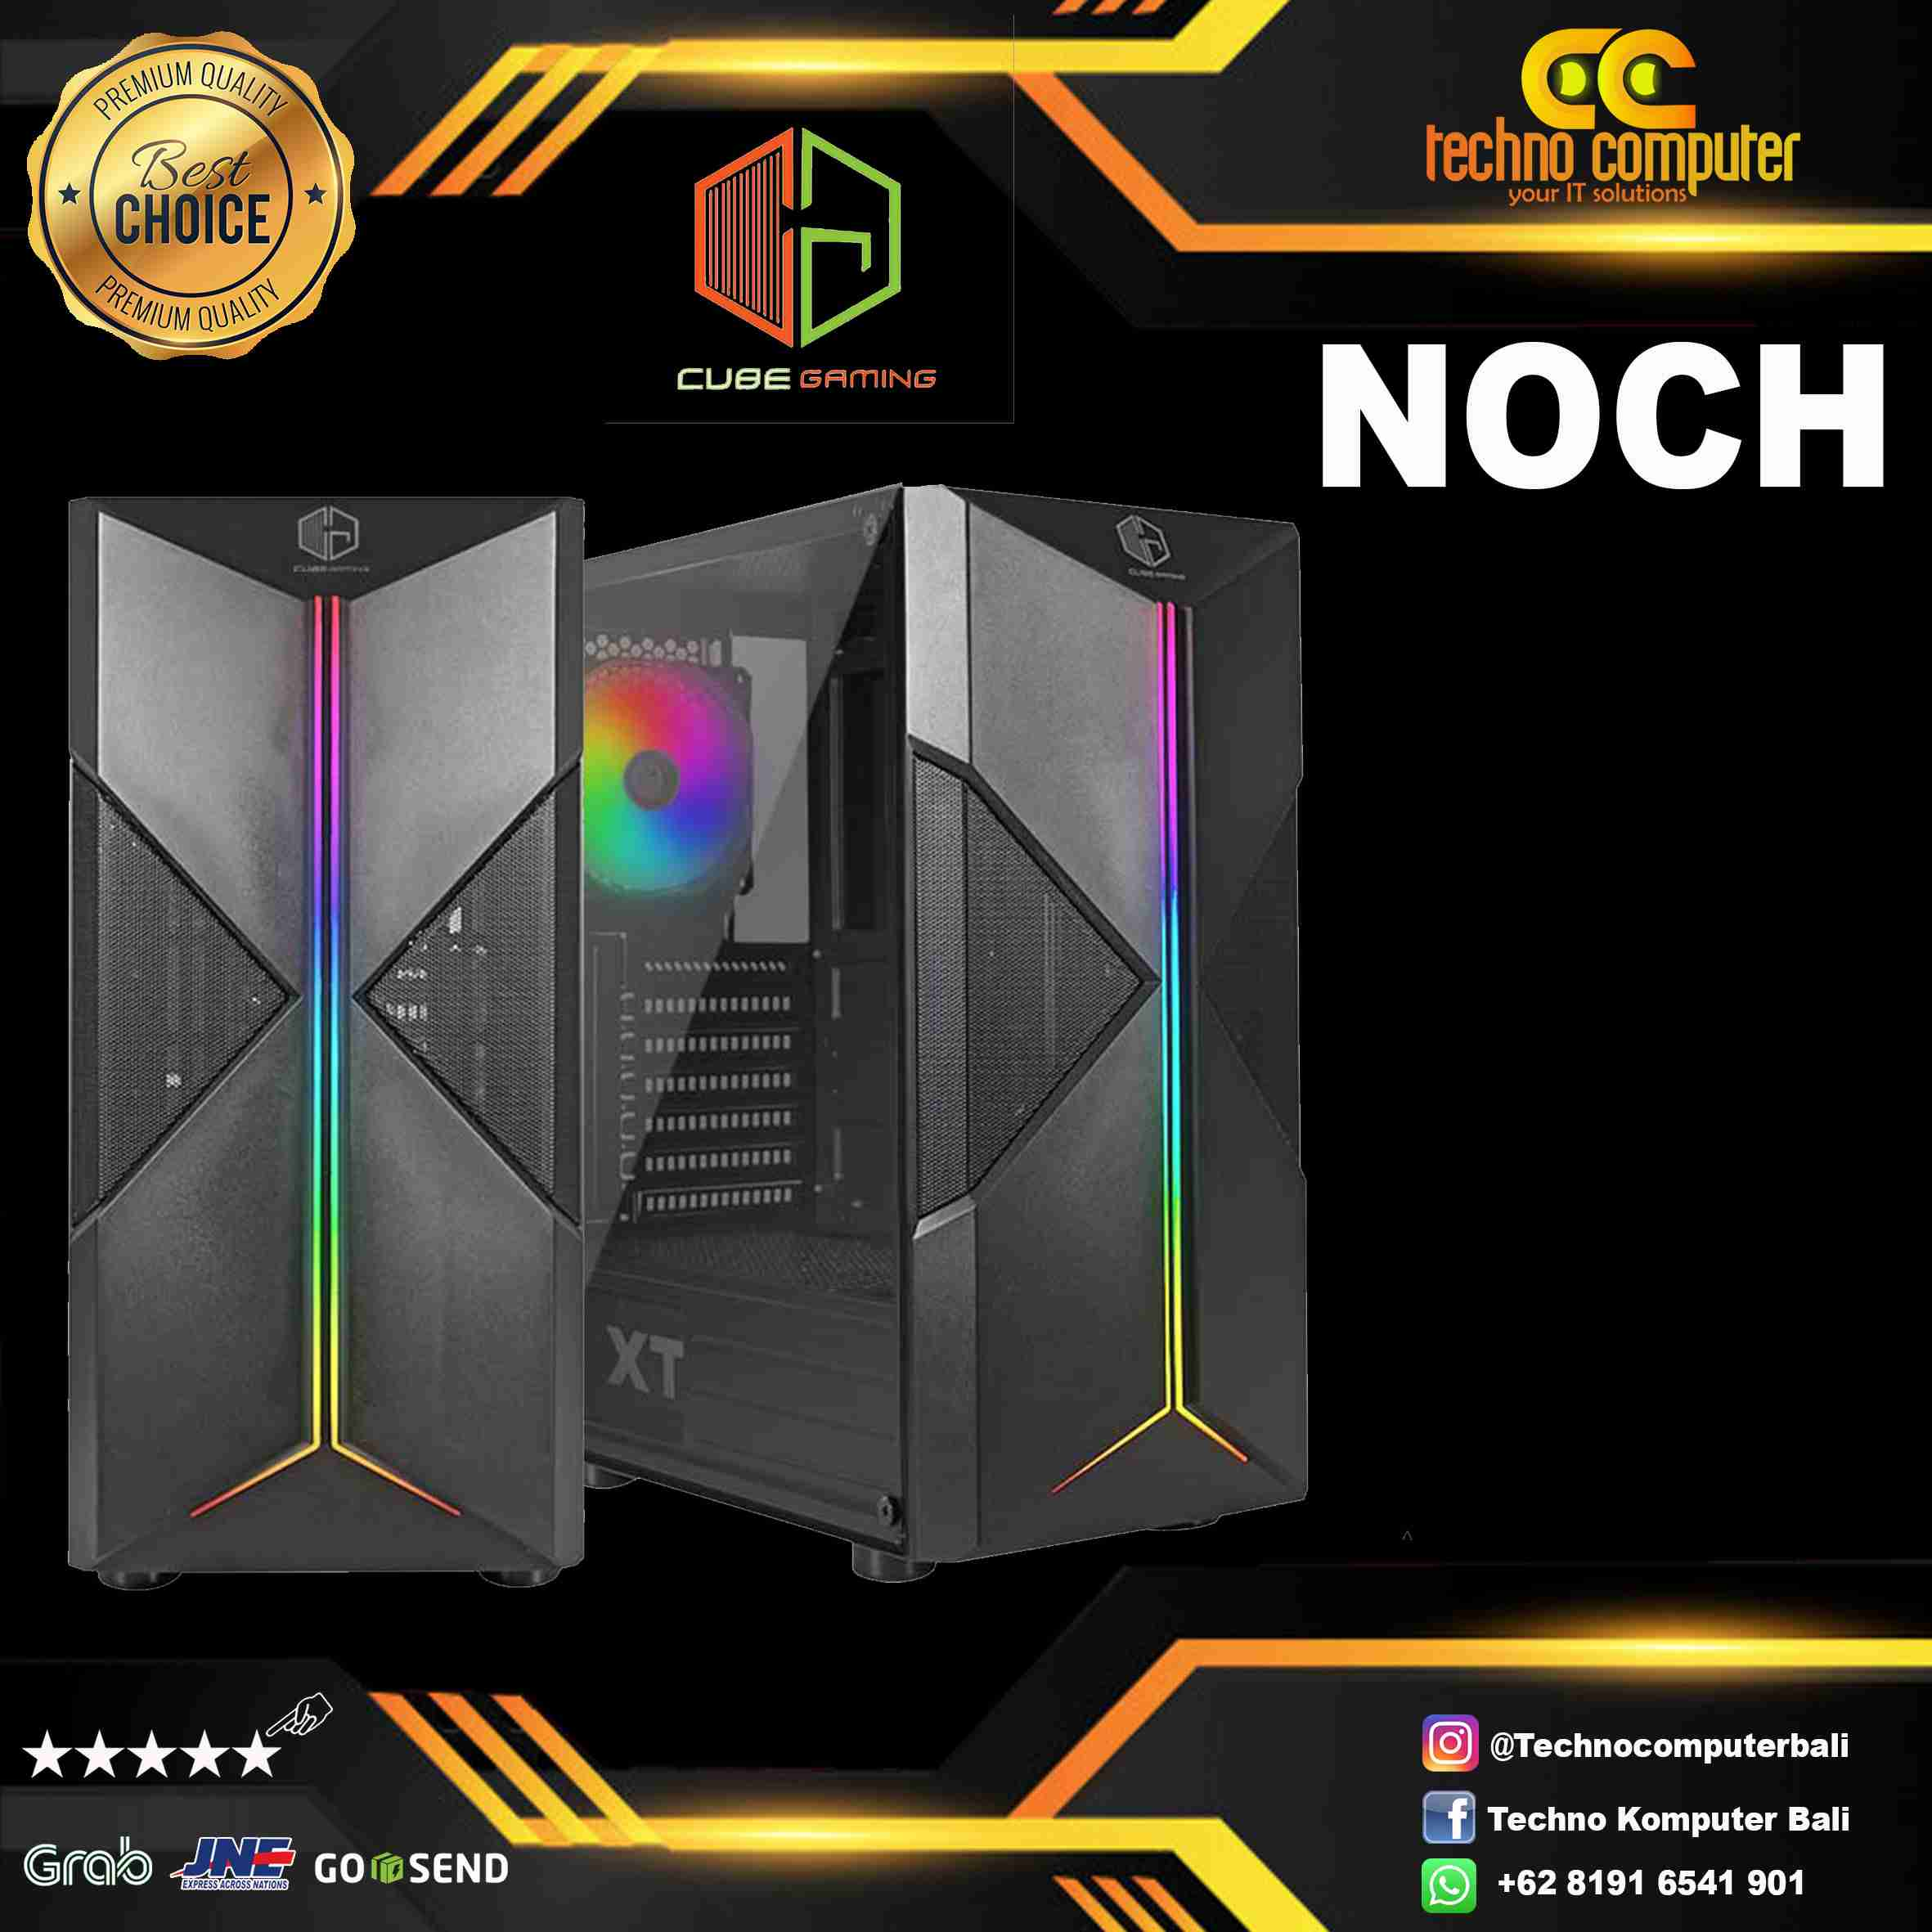 CASING CUBE GAMING NOCH - ATX - LEFT SIDE TEMPERED GLASS - FRONT LED RGB - FREE 1 PCS 12CM RGB FAN